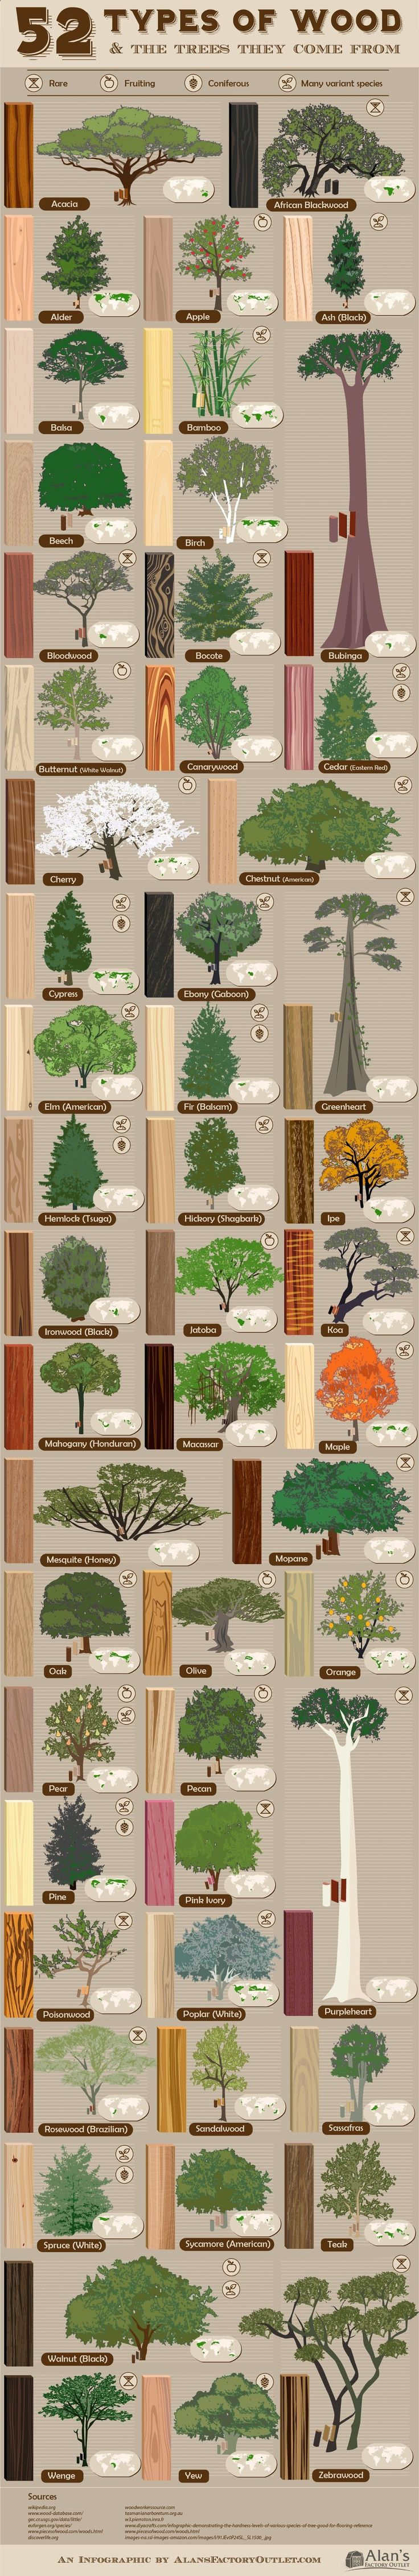 Wood Profits - 52 Types of Wood and the Trees They Come From - AlansFactoryOutle... - Infographic Discover How You Can Start A Woodworking Business From Home Easily in 7 Days With NO Capital Needed!